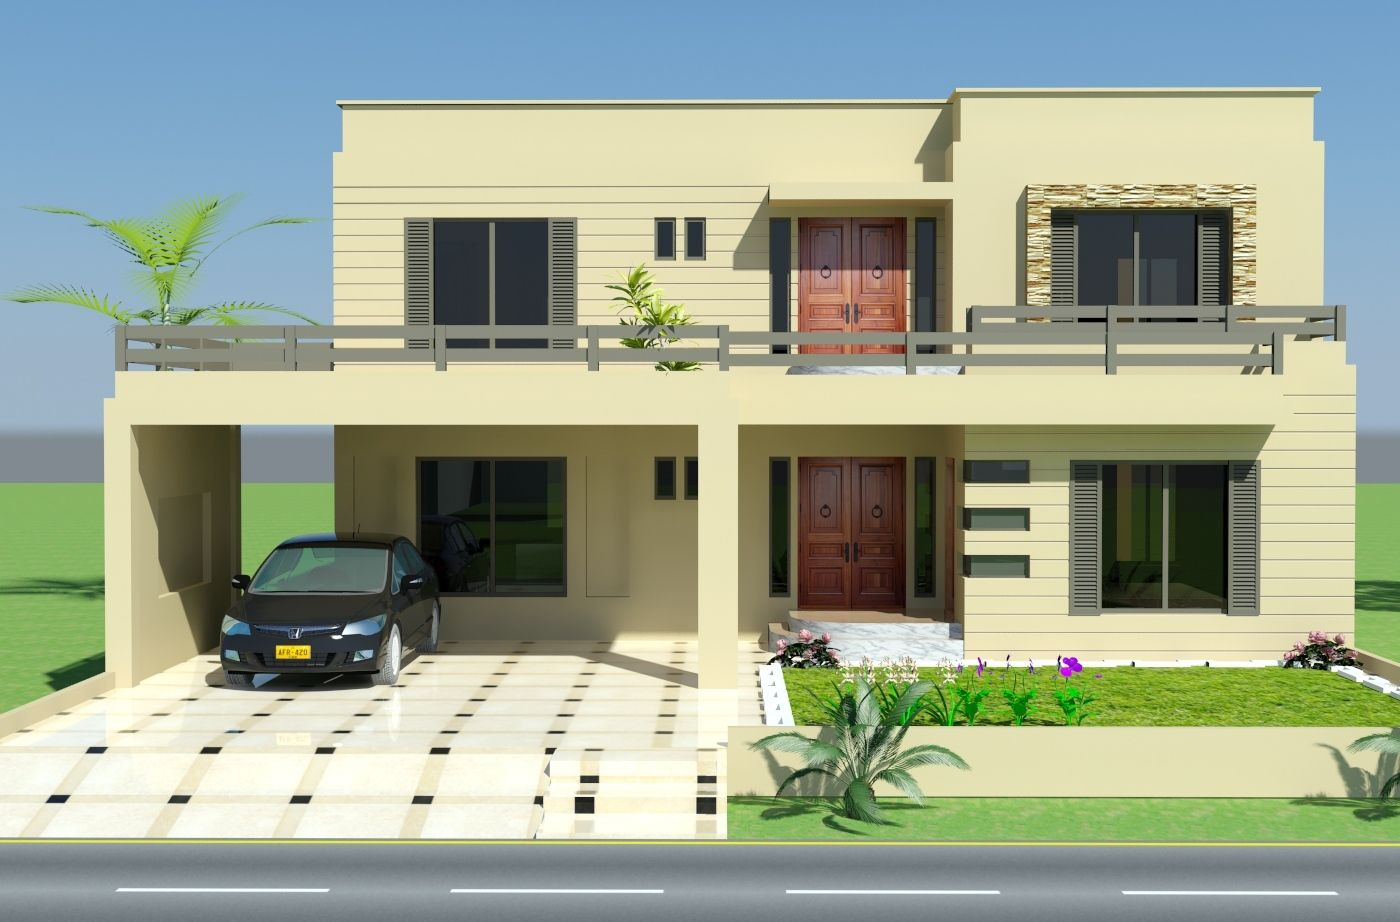 Exterior house design front elevation mi futura casa for Design the exterior of a house online